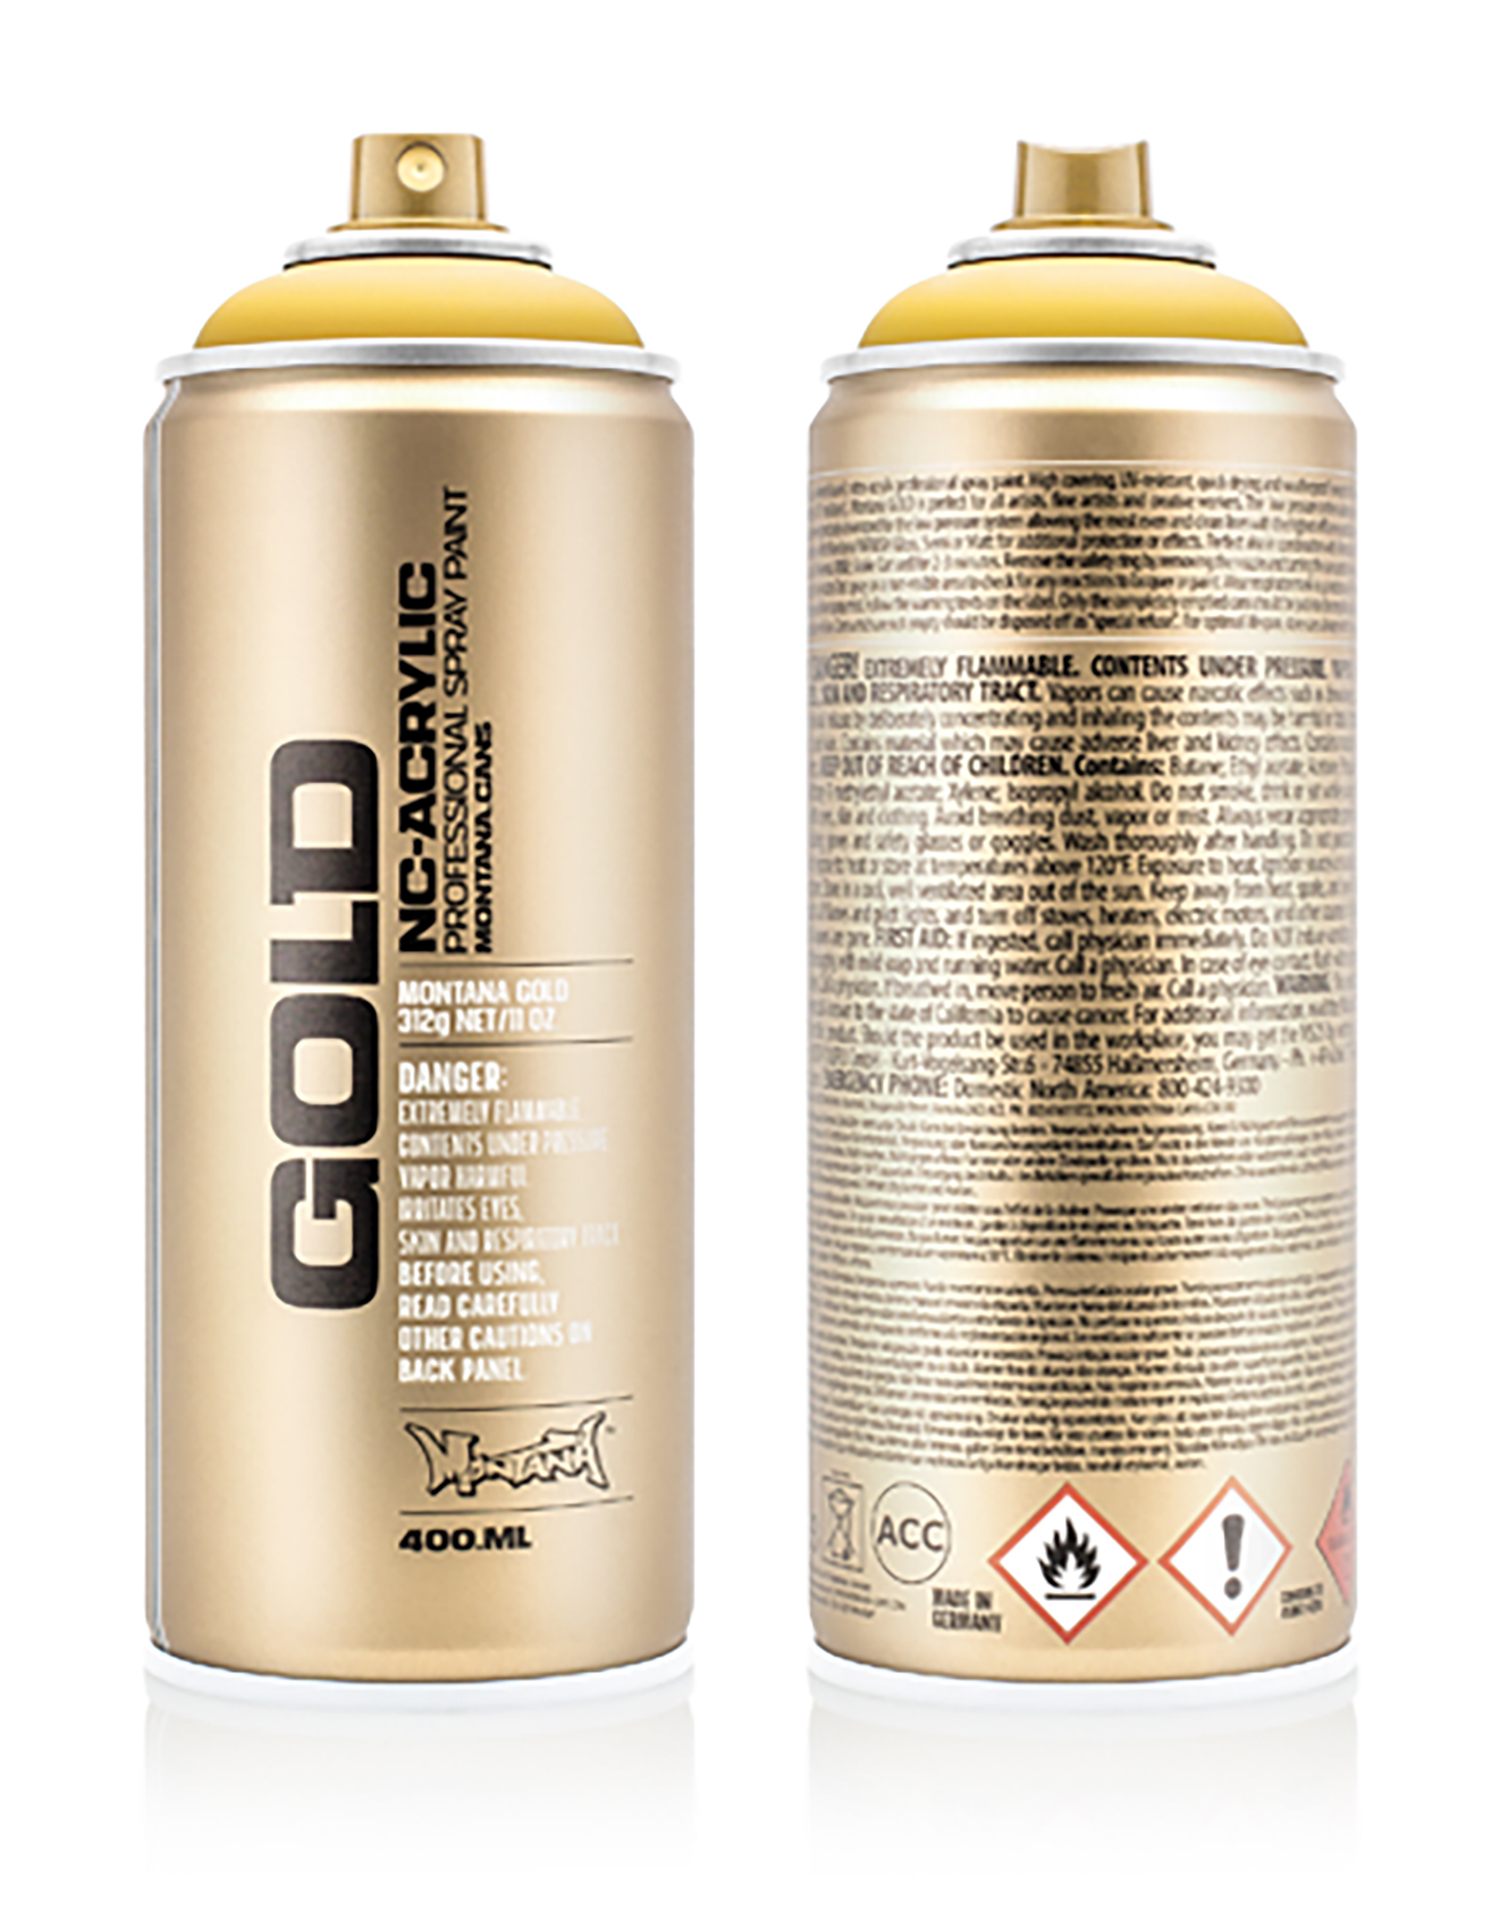 MONTANA-GOLD-SPRAY-400ML-G-1210